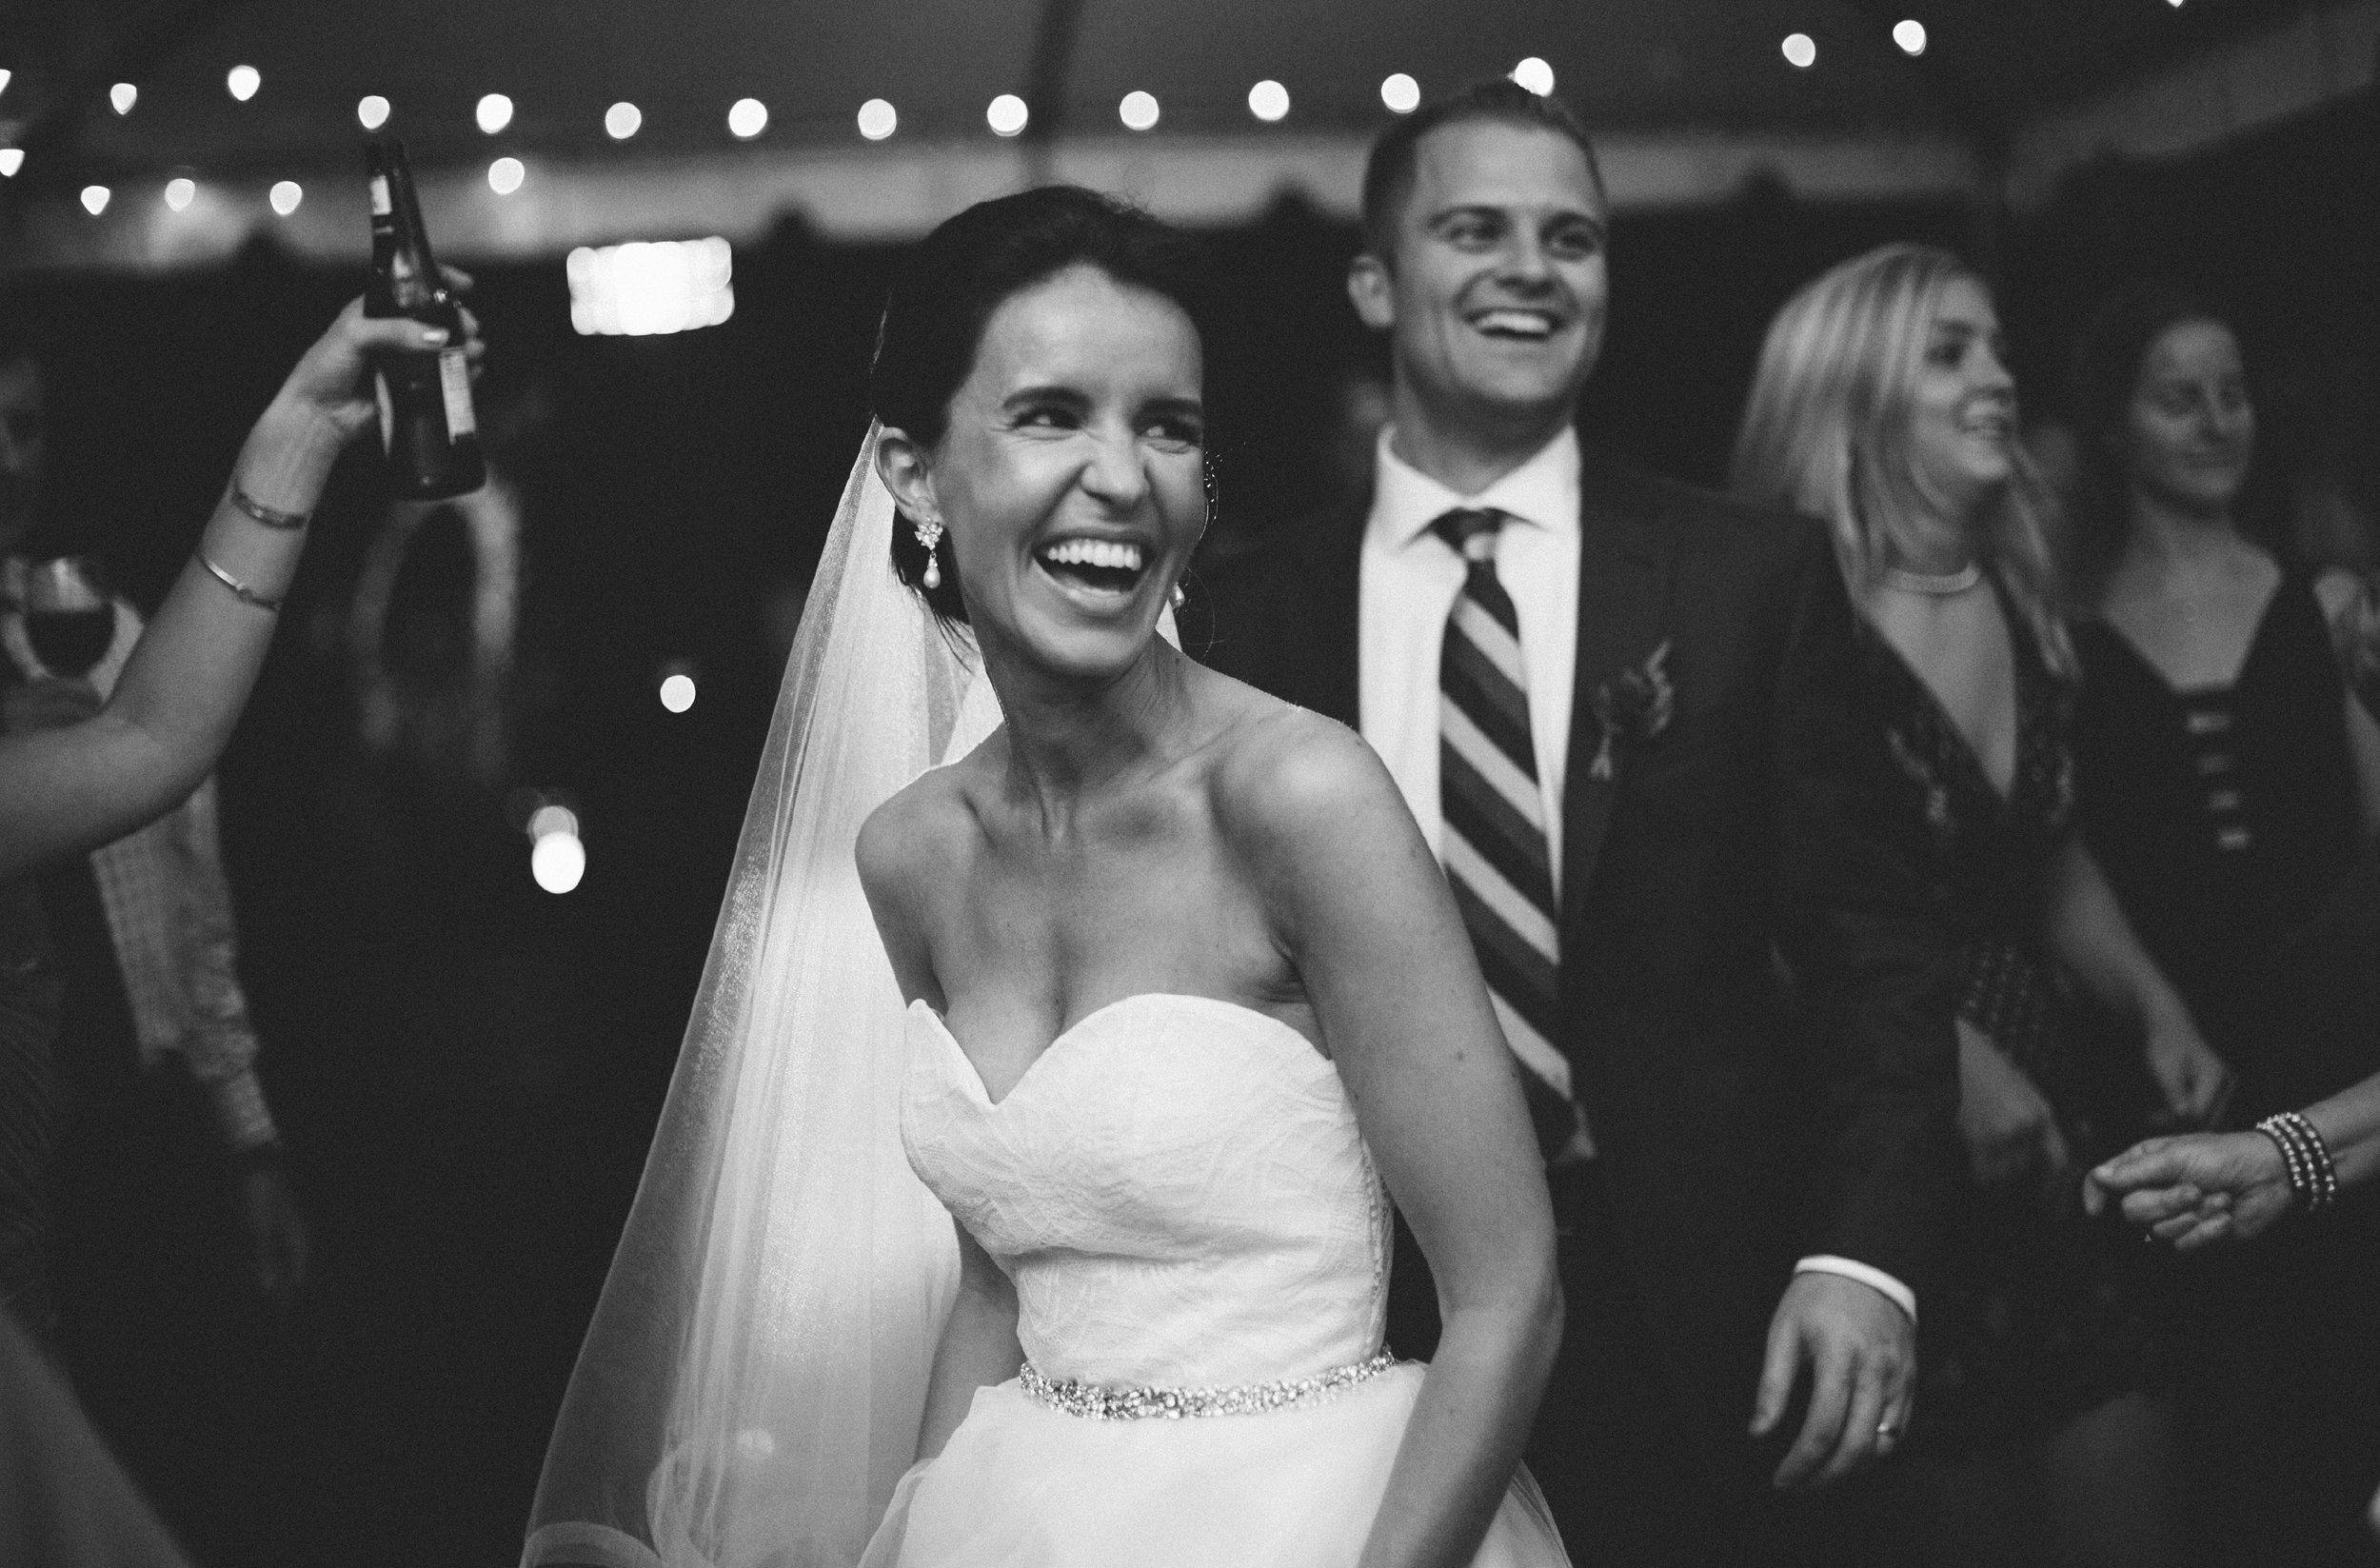 Heather + Greg's Wedding at the Bonnet House Ft Lauderdale75.jpg